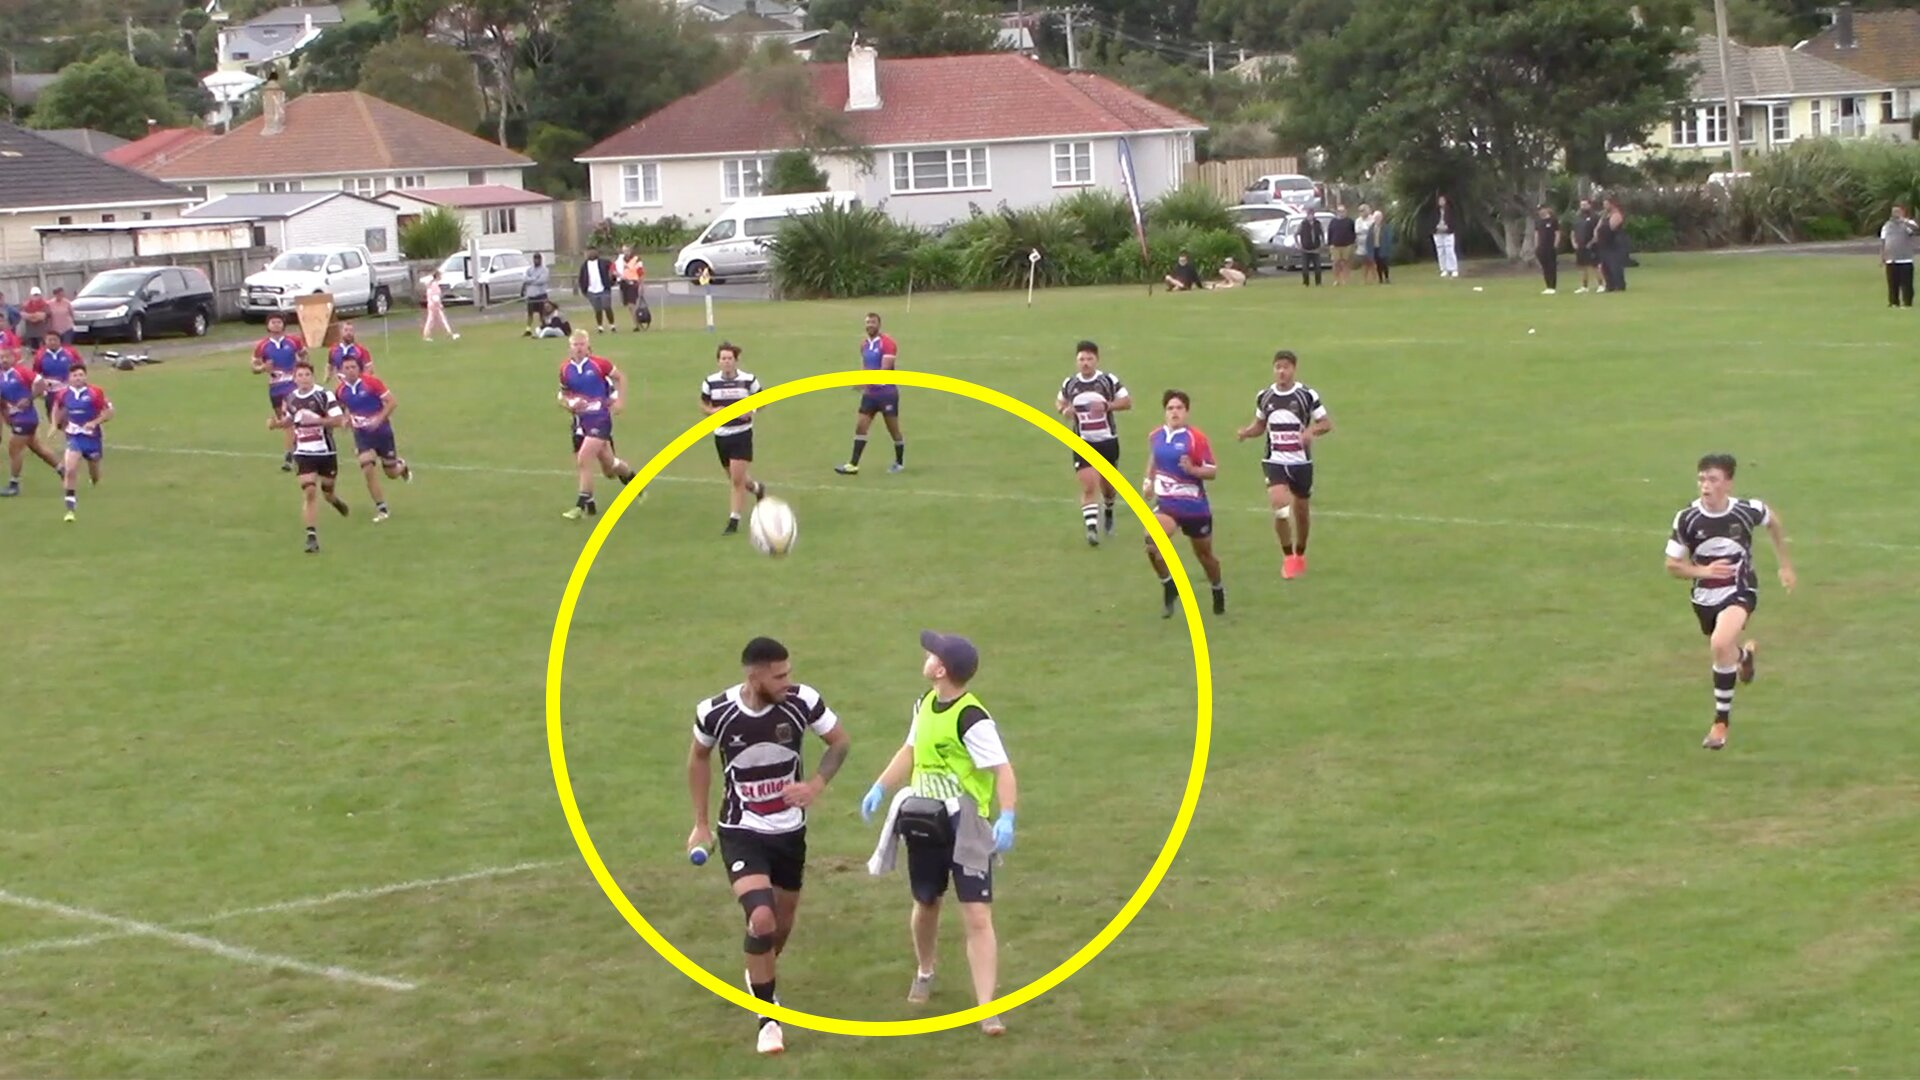 Fans amazed as one in a million rugby moment is captured on video